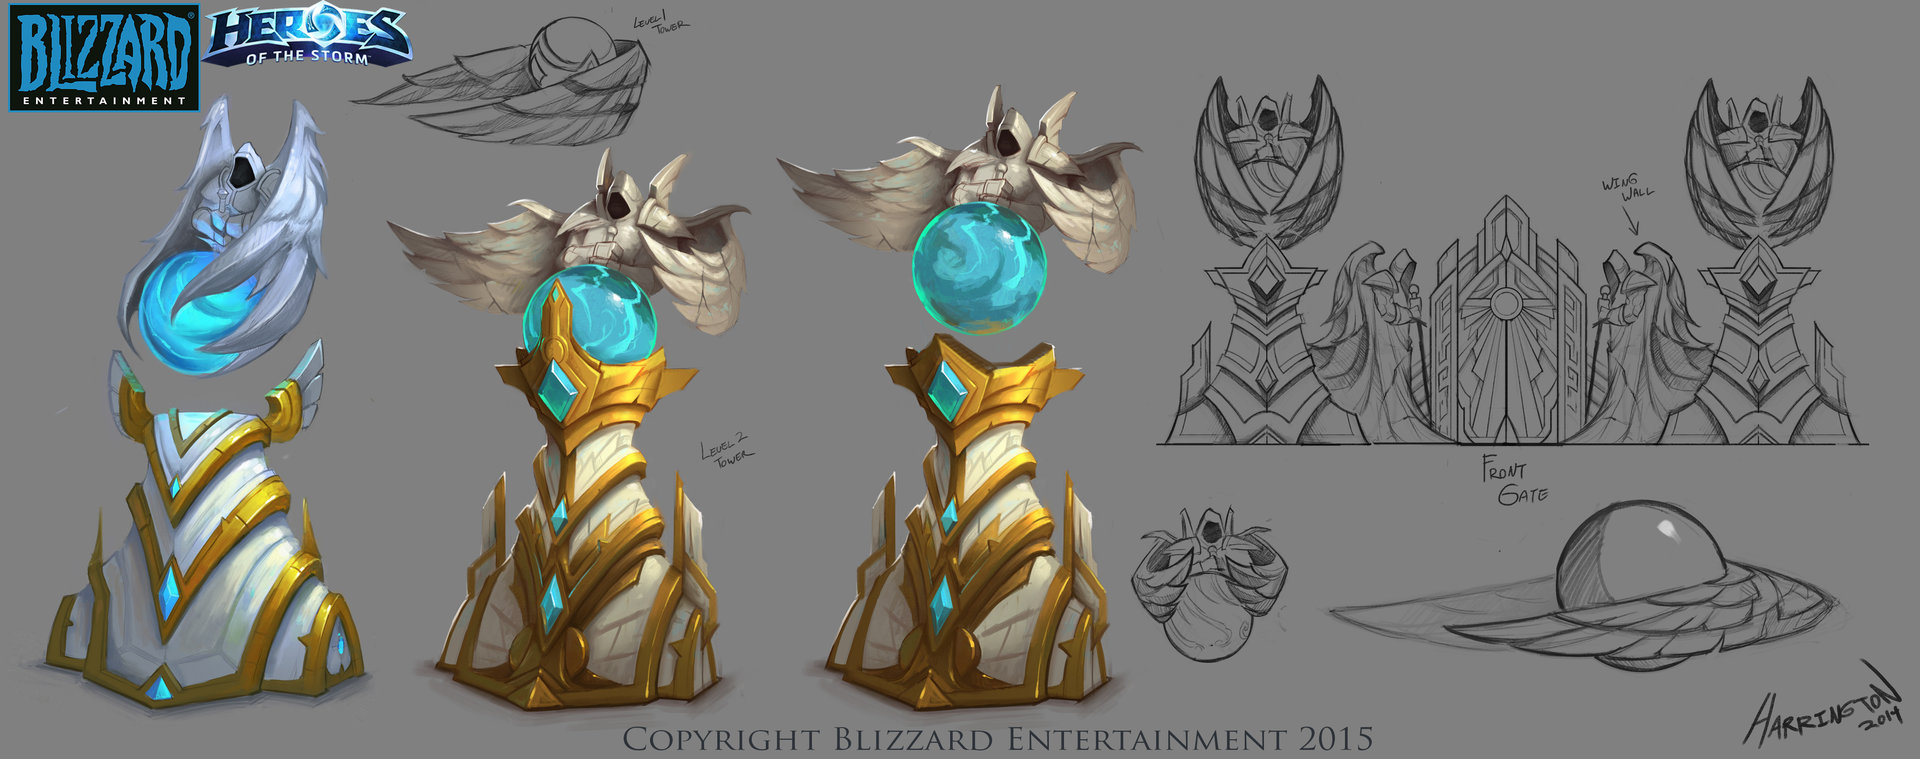 Artstation Heroes Of The Storm Heaven Tower Concept